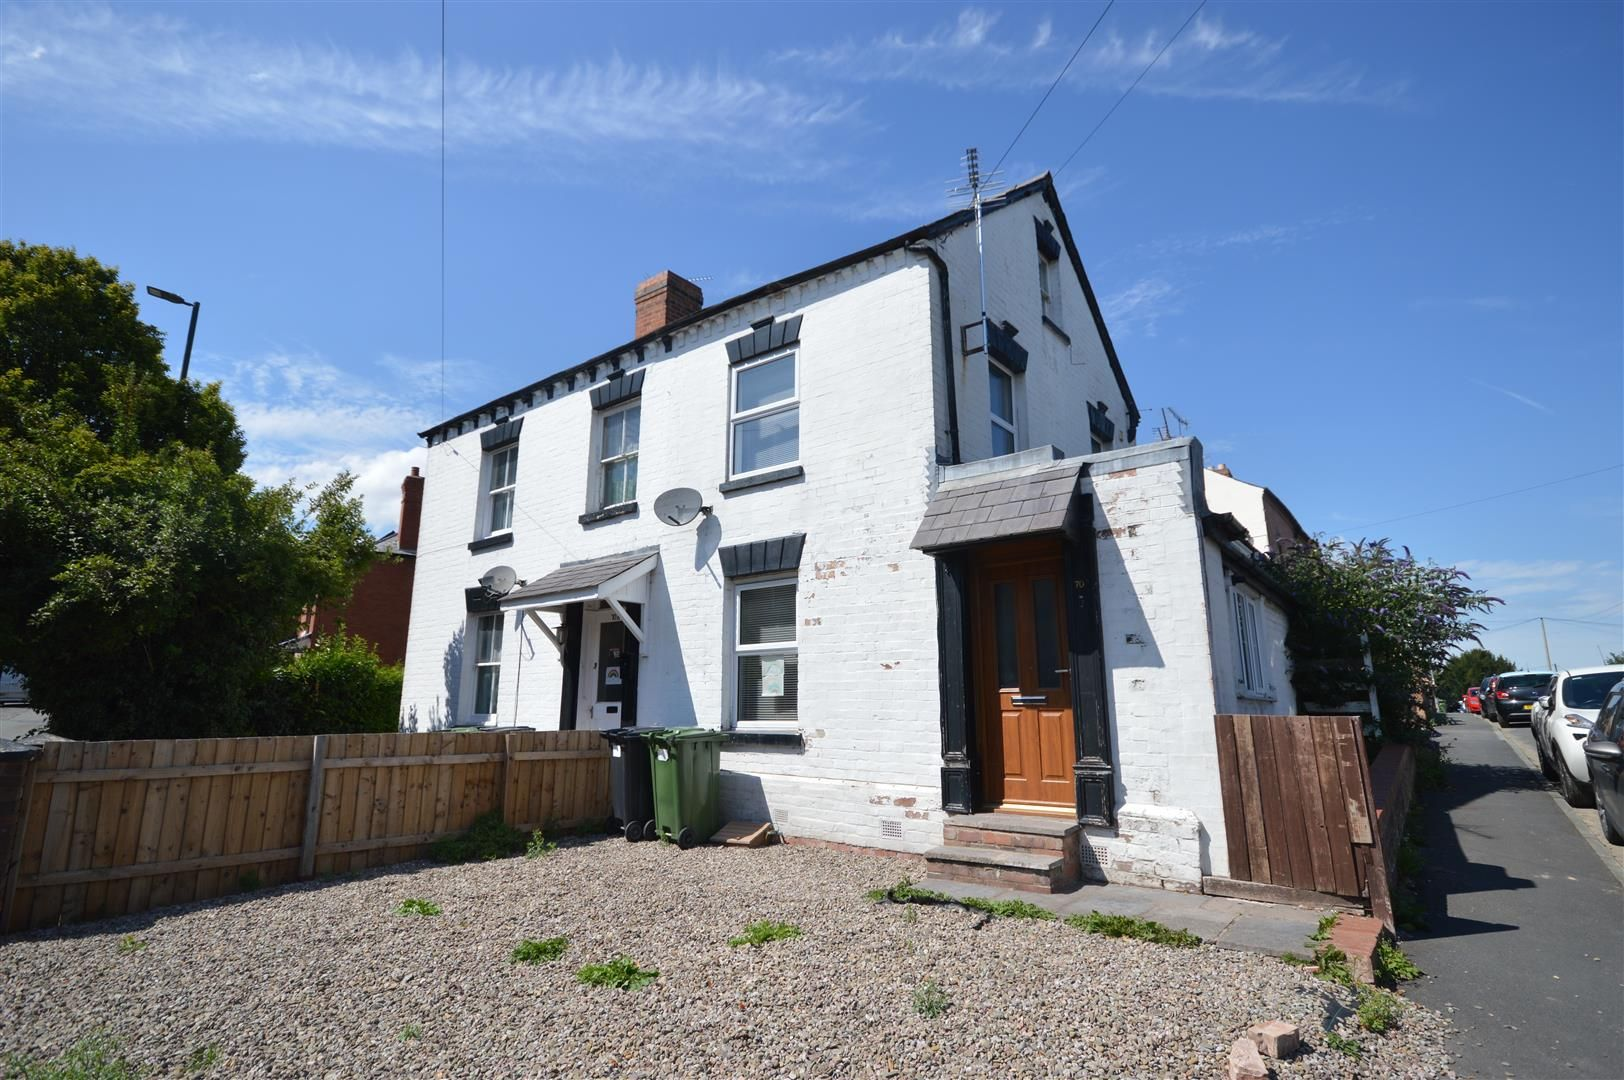 1 bed semi-detached for sale in Leominster, HR6